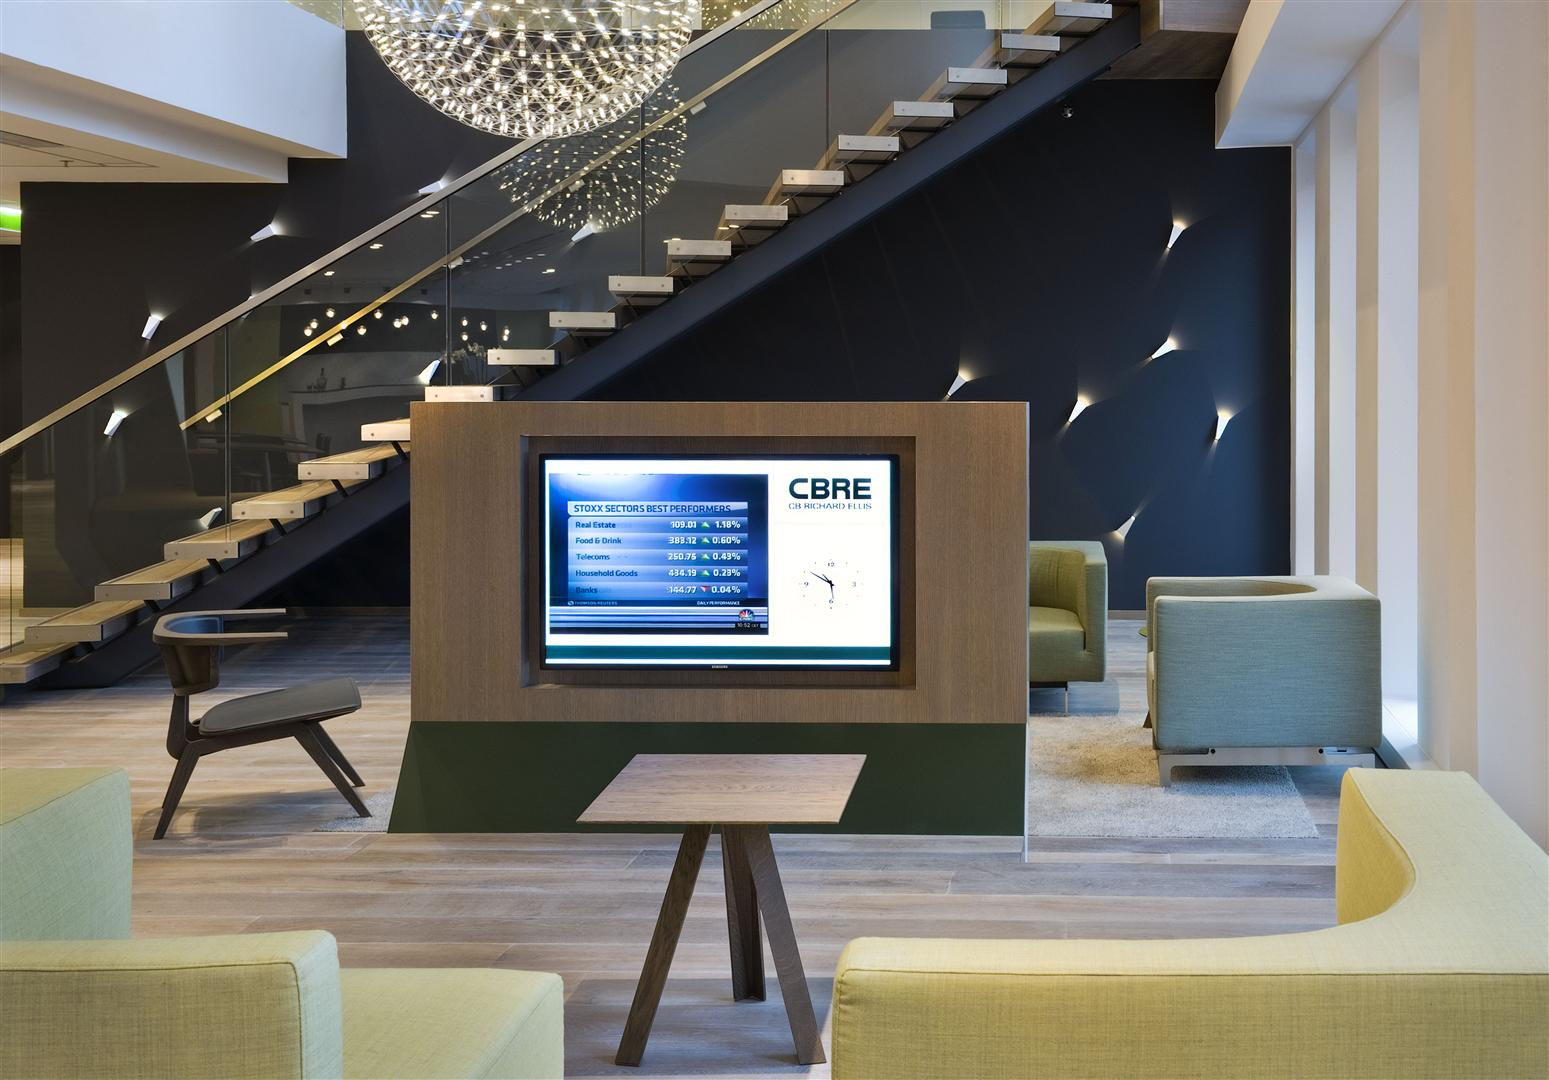 CBRE - Case Study - CBRE HQ The Netherlands - Symphony Offices, Zuidas, Amsterdam - Interior 05